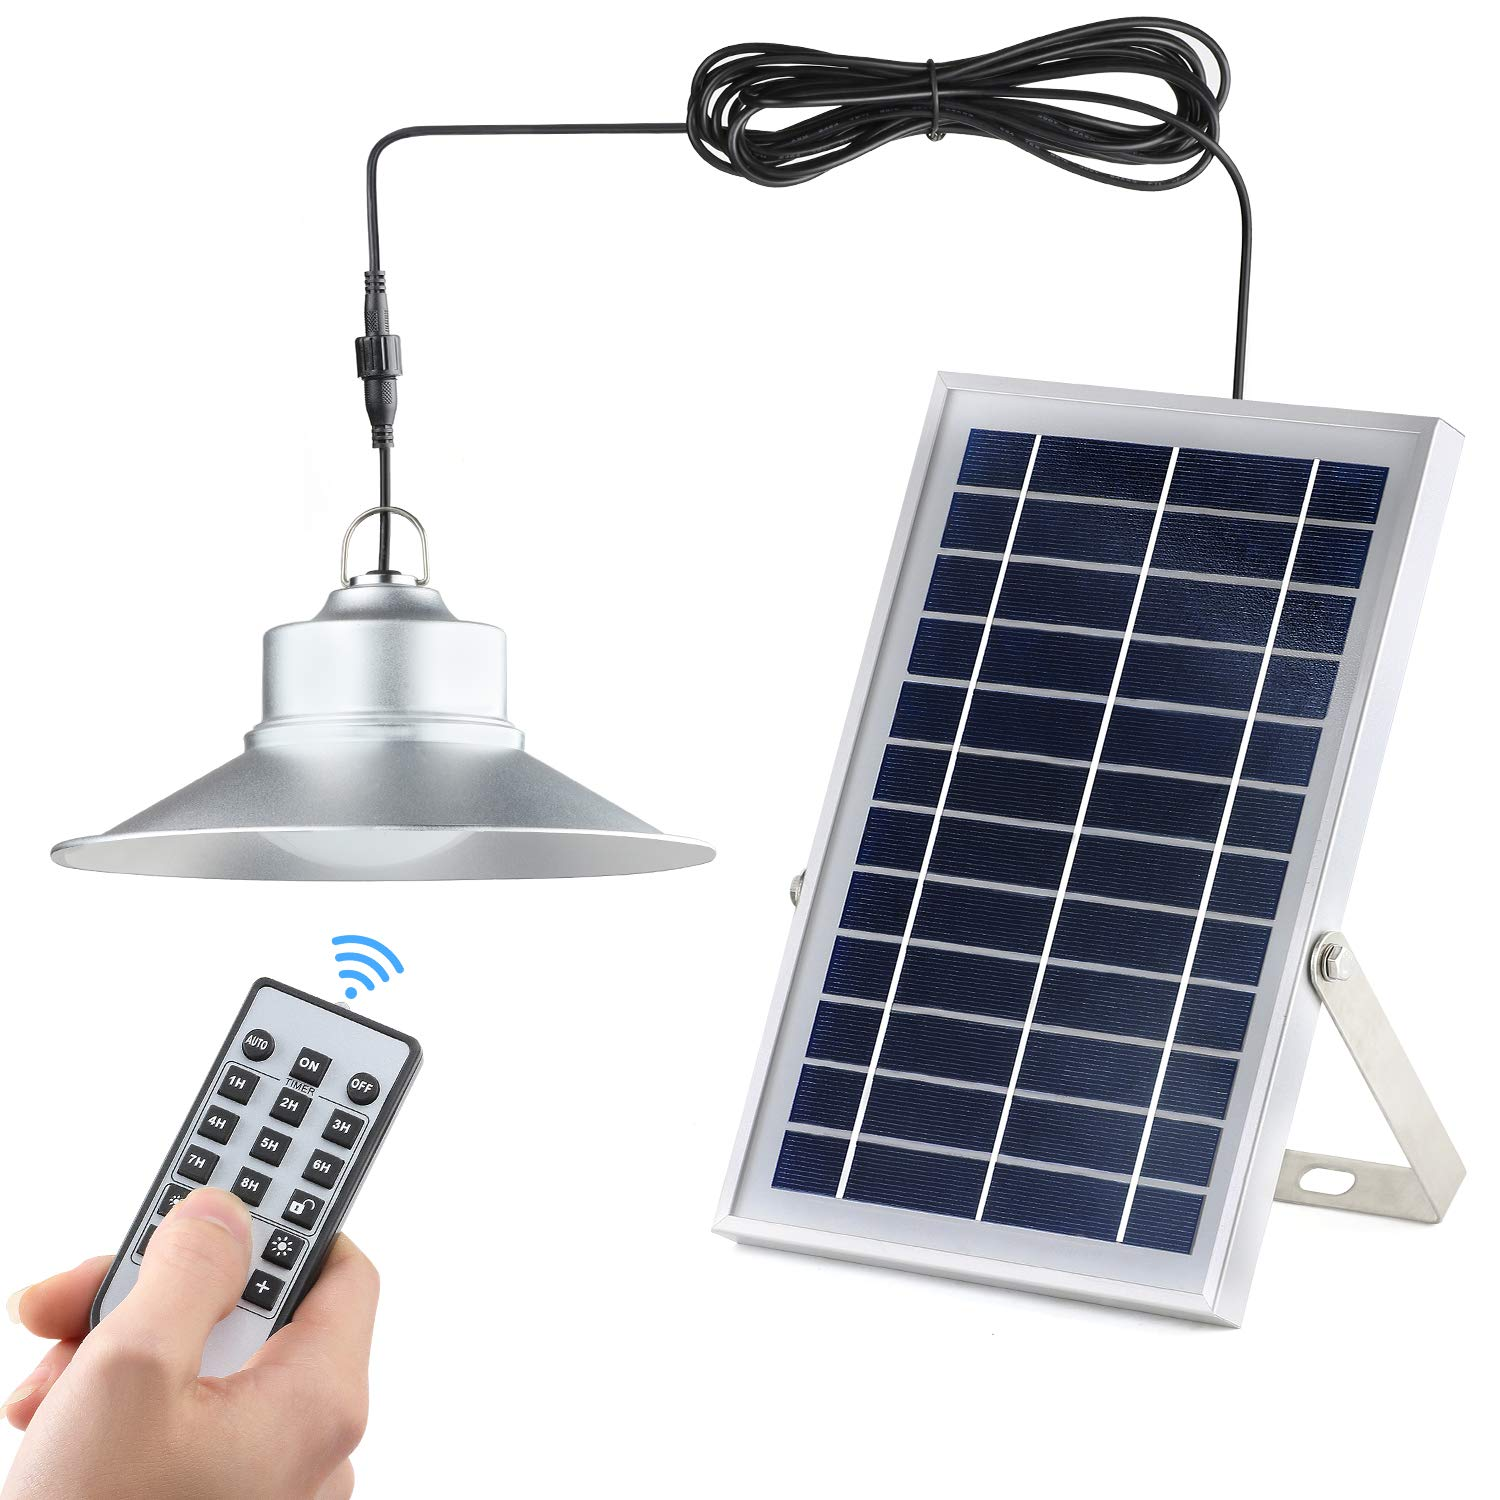 Solar Lights,Kyson Indoor Vintage Solar Shed Light 5200aMH Aluminum Alloy Hanging Barn Light with Remote Control Also for Outdoor Use IP65 by Kyson